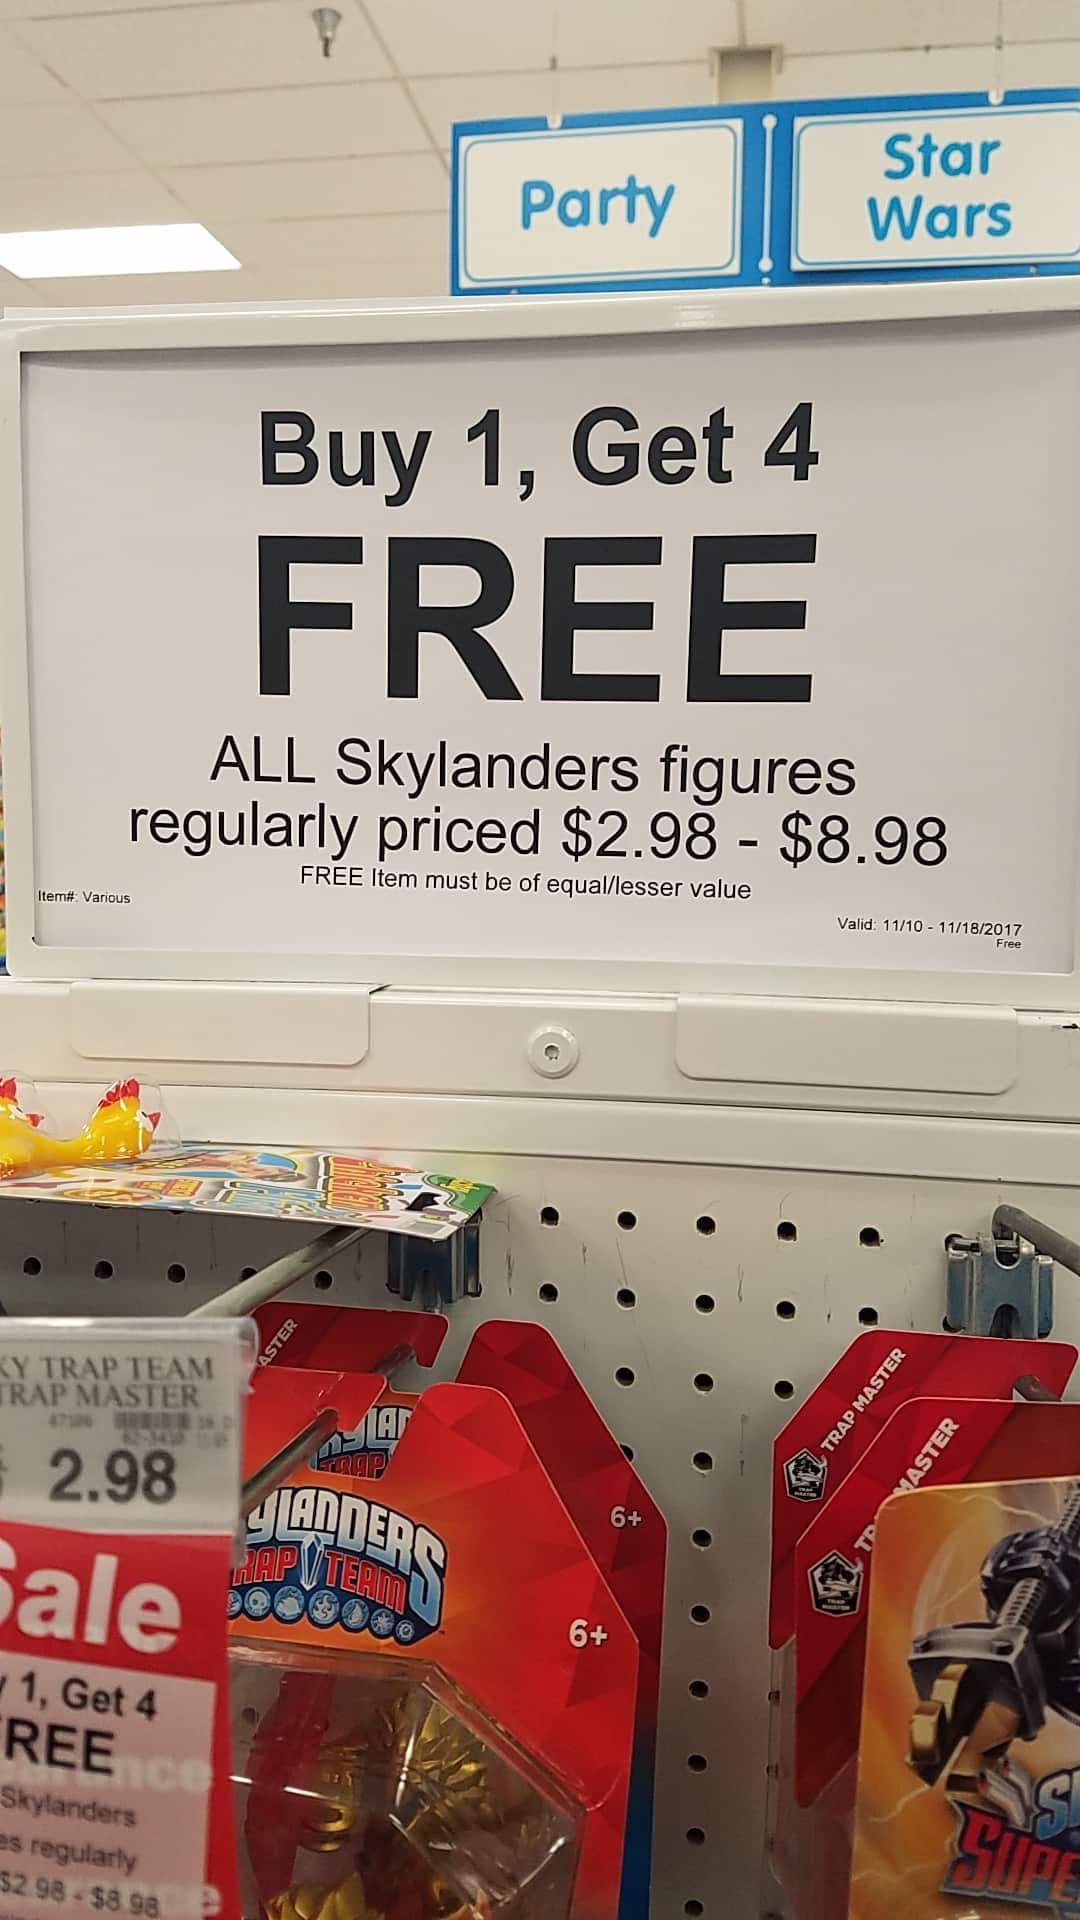 Toys R Us skylanders are B1G4 free  - many priced at $2.98 YMMV